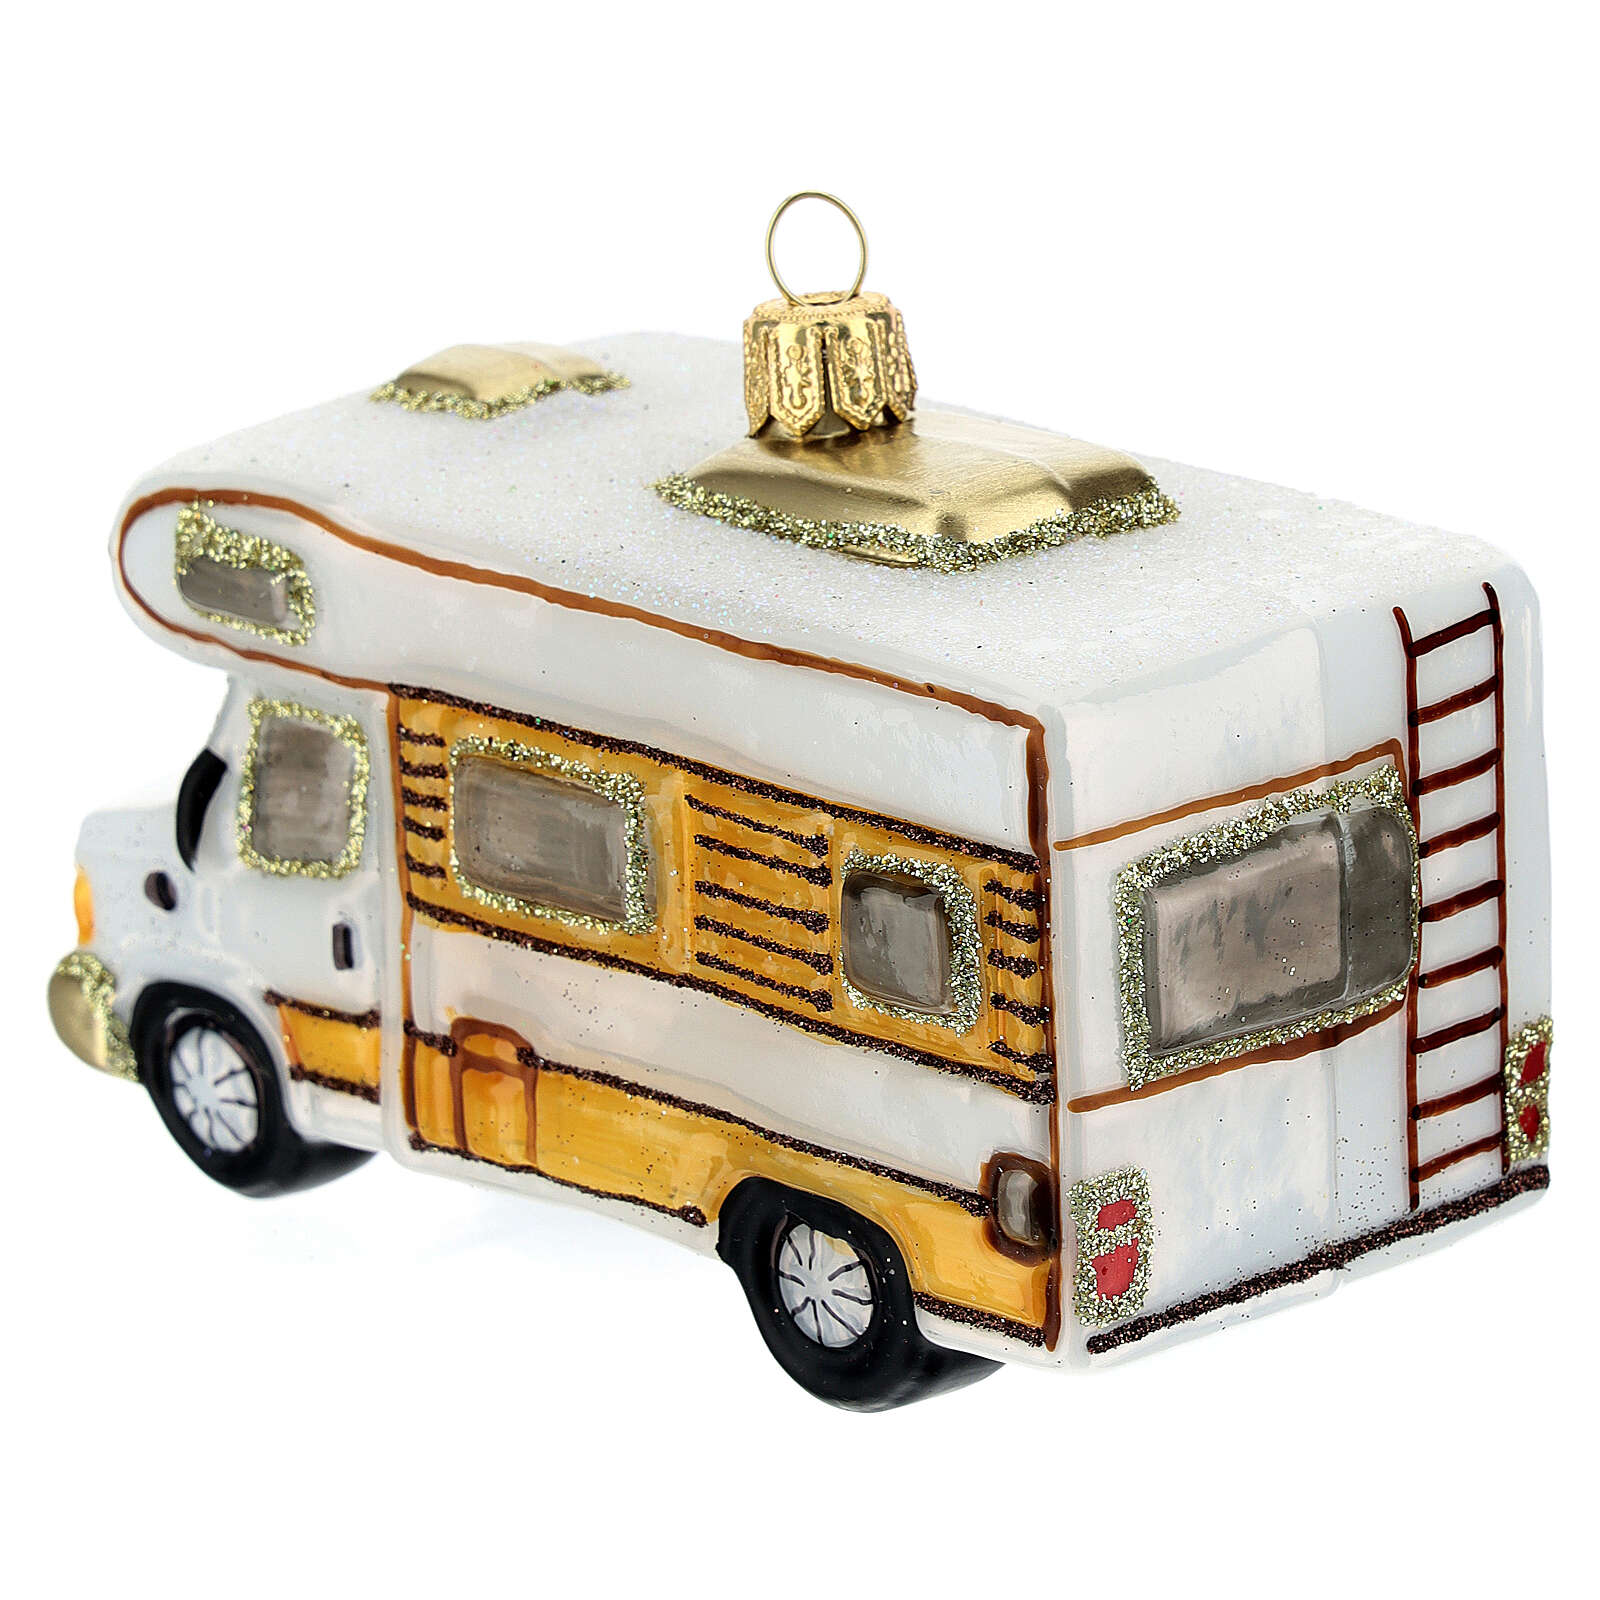 Blown glass Christmas ornament, RV camper 4